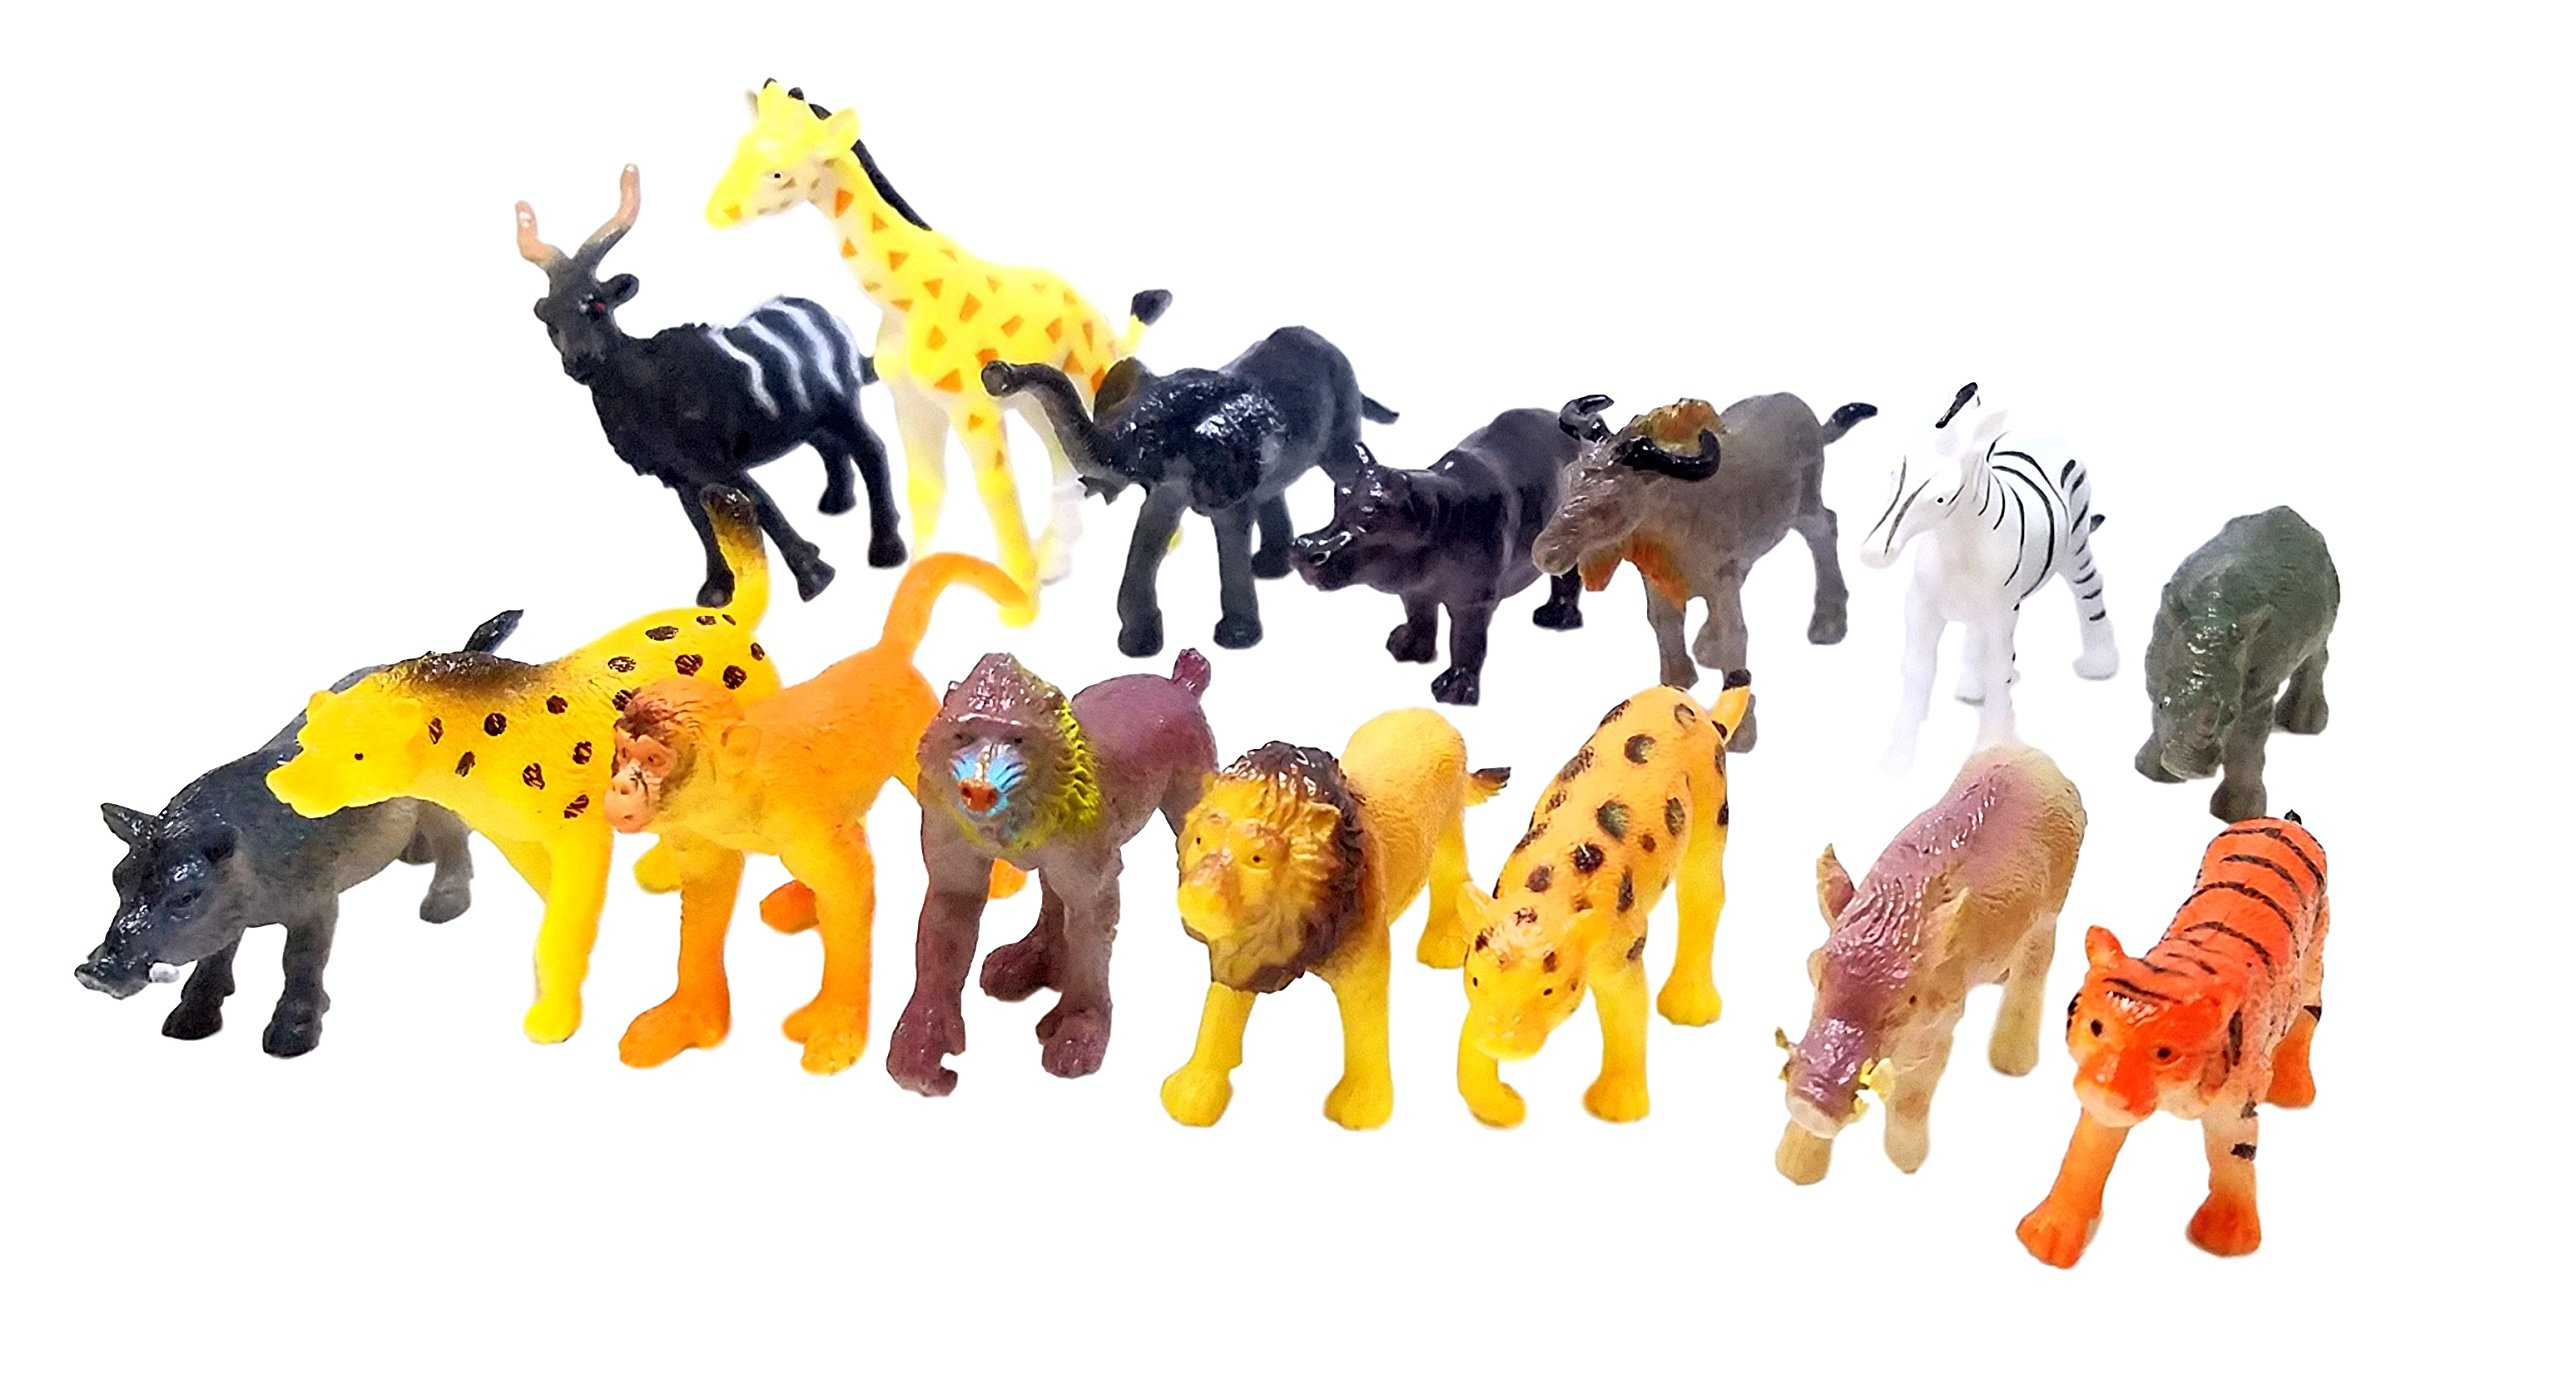 Mini African Safari Jungle Animals Play Set, Assorted Creatures, 30 ct (2 sets of 15)- Kids Miniature Party Favors, Bag Stuffer, Pinata Filler, Gift, Prize, Educational Counting & Sensory Toys